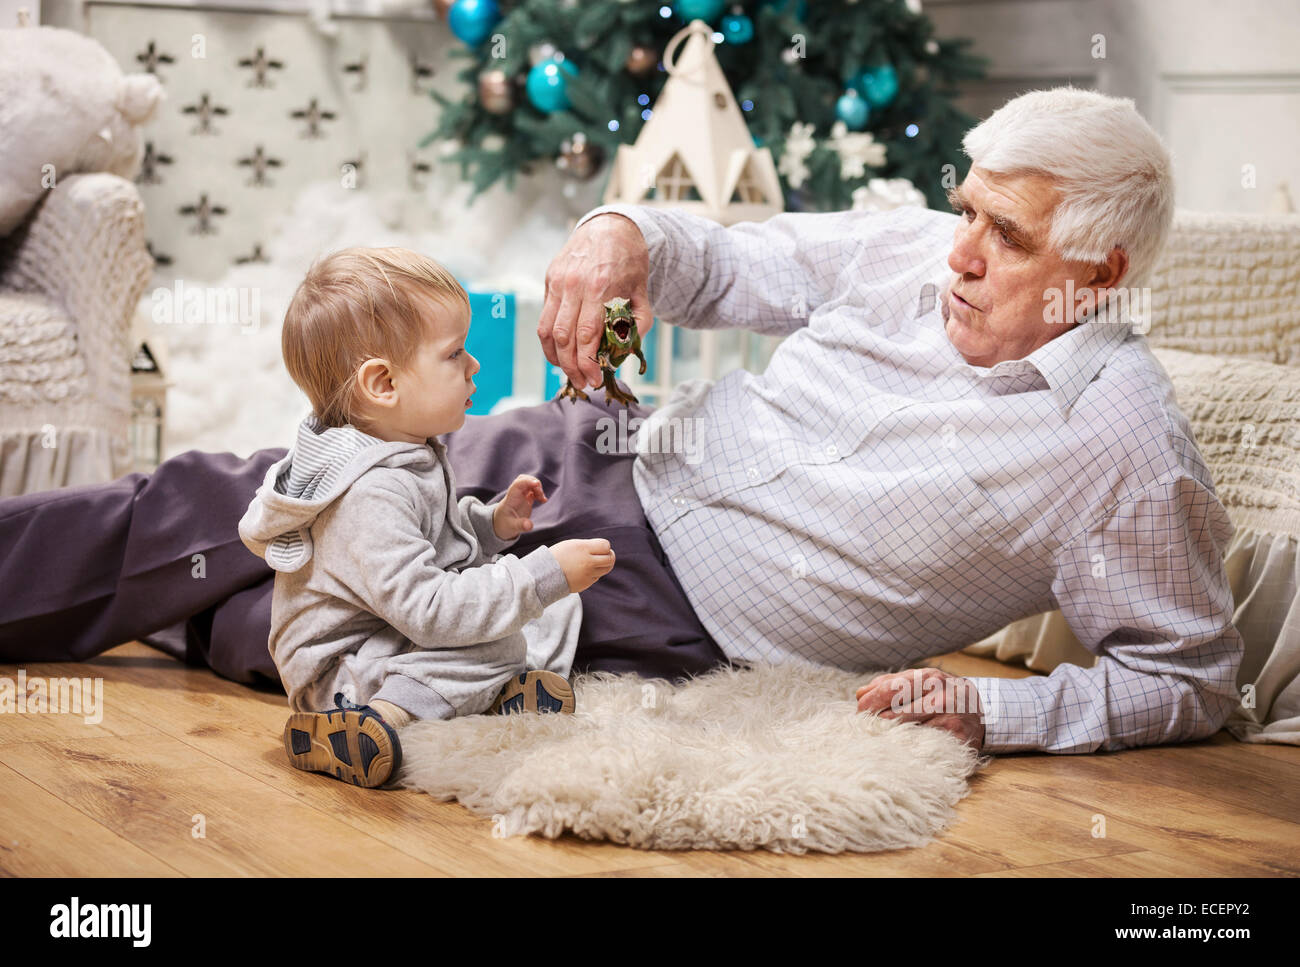 Toddler boy and his grandpa playing with toy dinosaur at Christmas tree - Stock Image